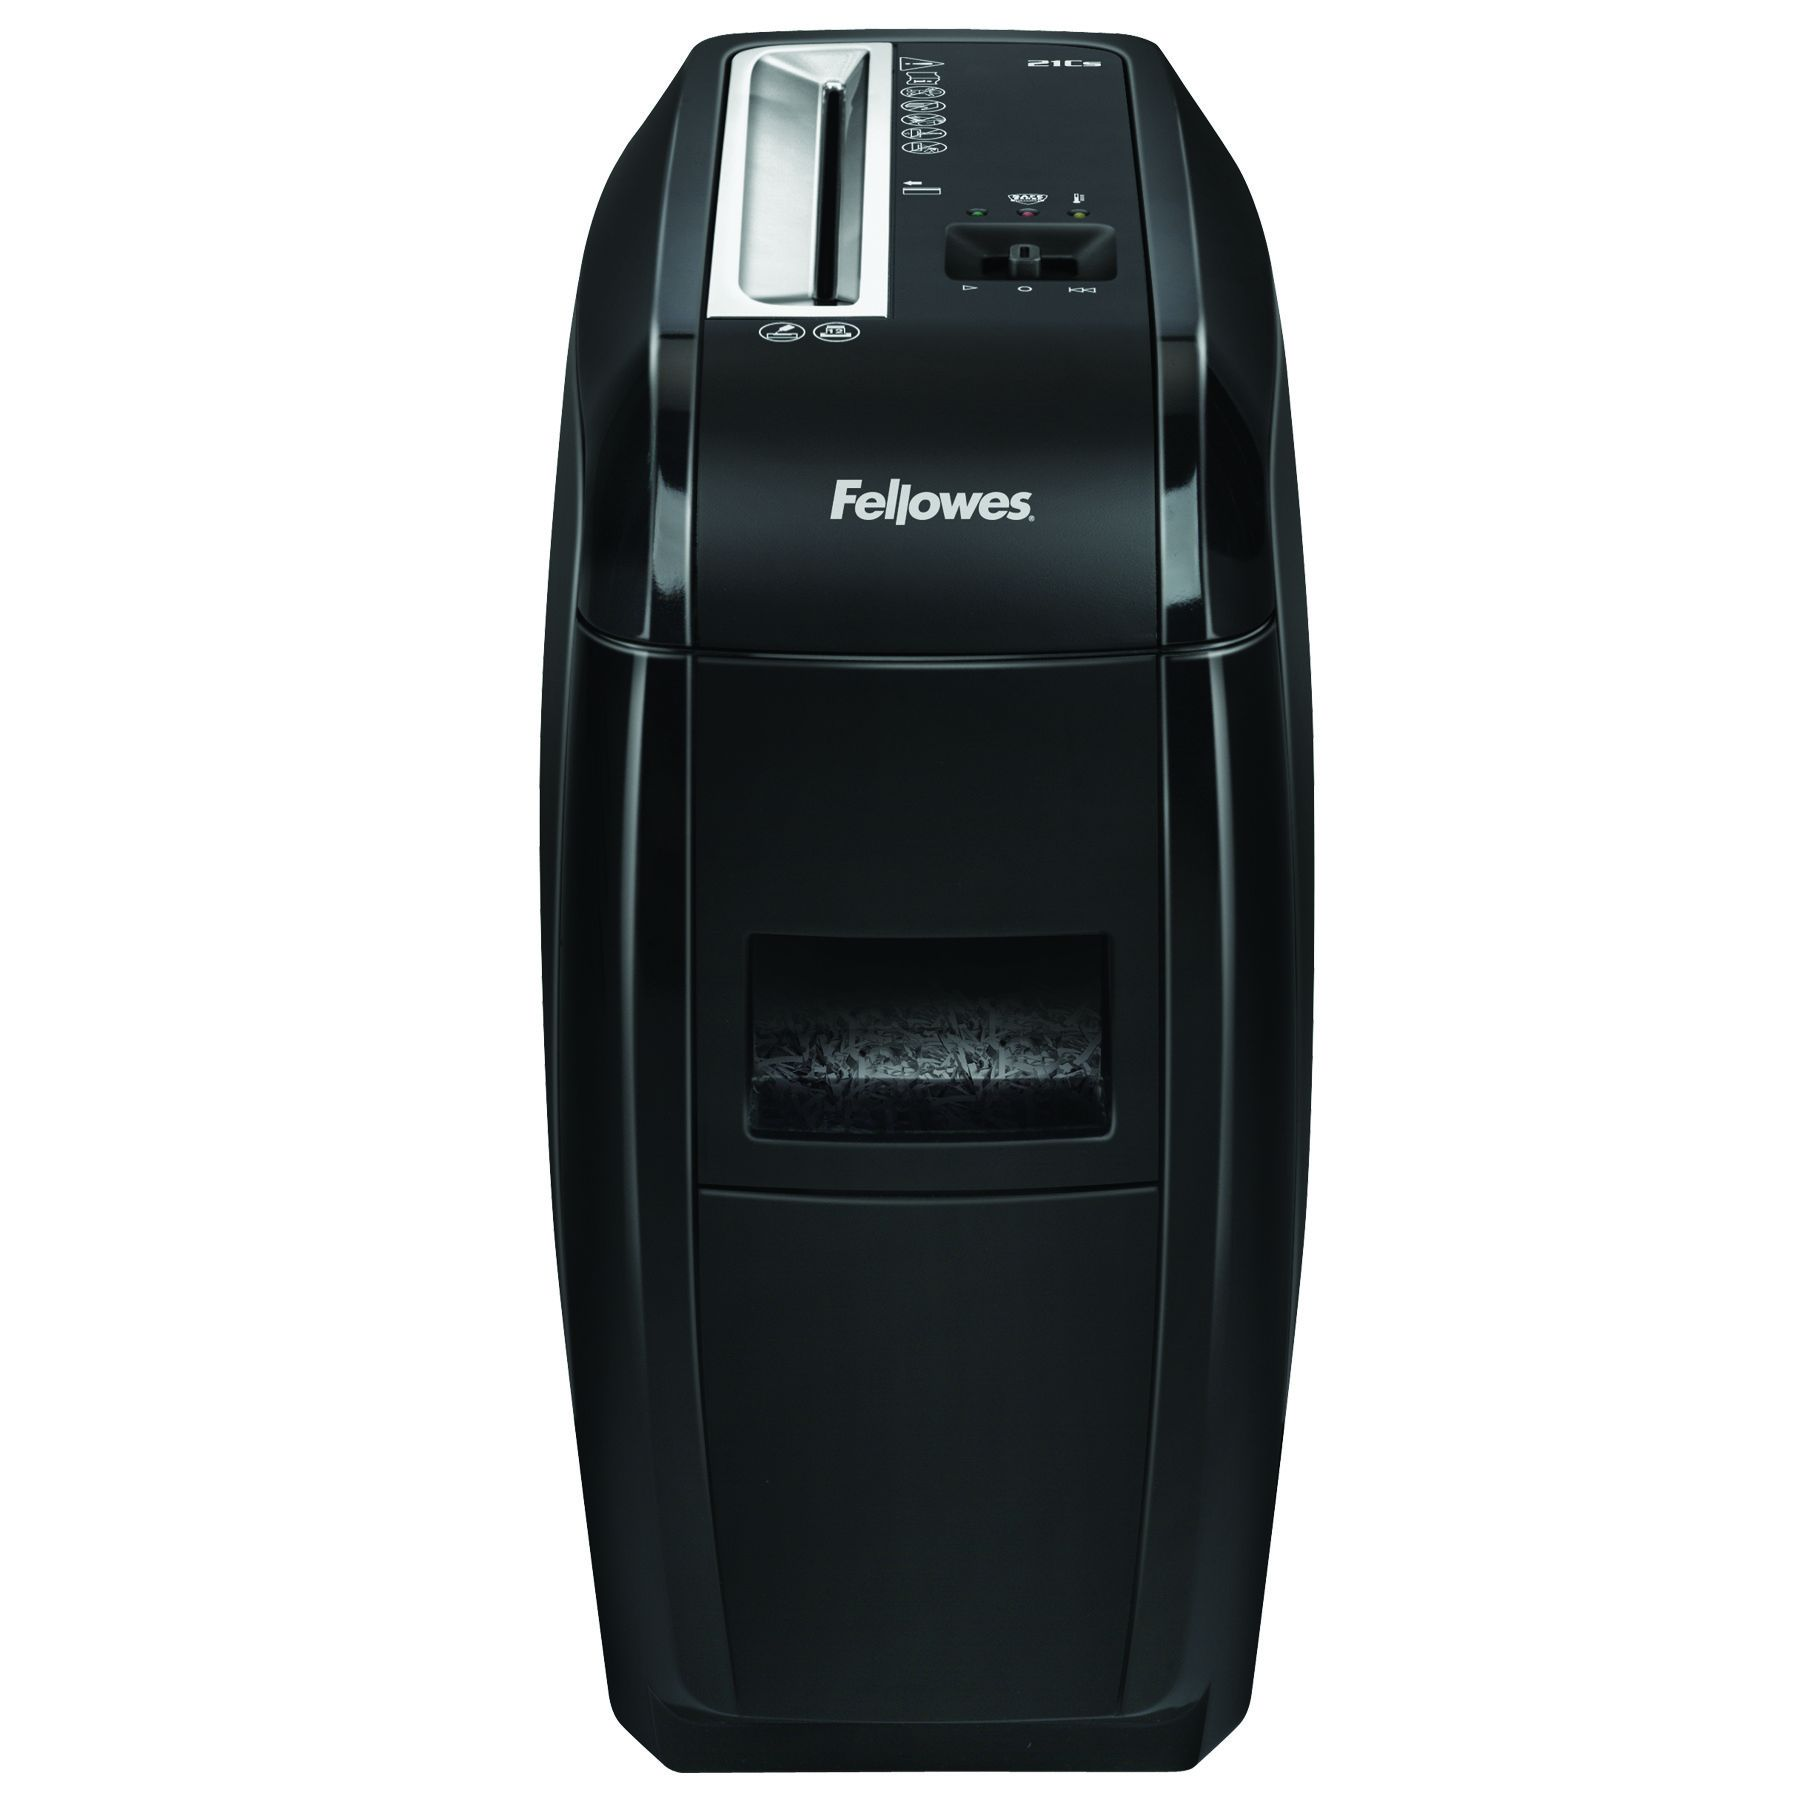 Fellowes Powershred 21Cs - destructeur de documents coupe croisée - 12 feuilles - Corbeille 15 litres